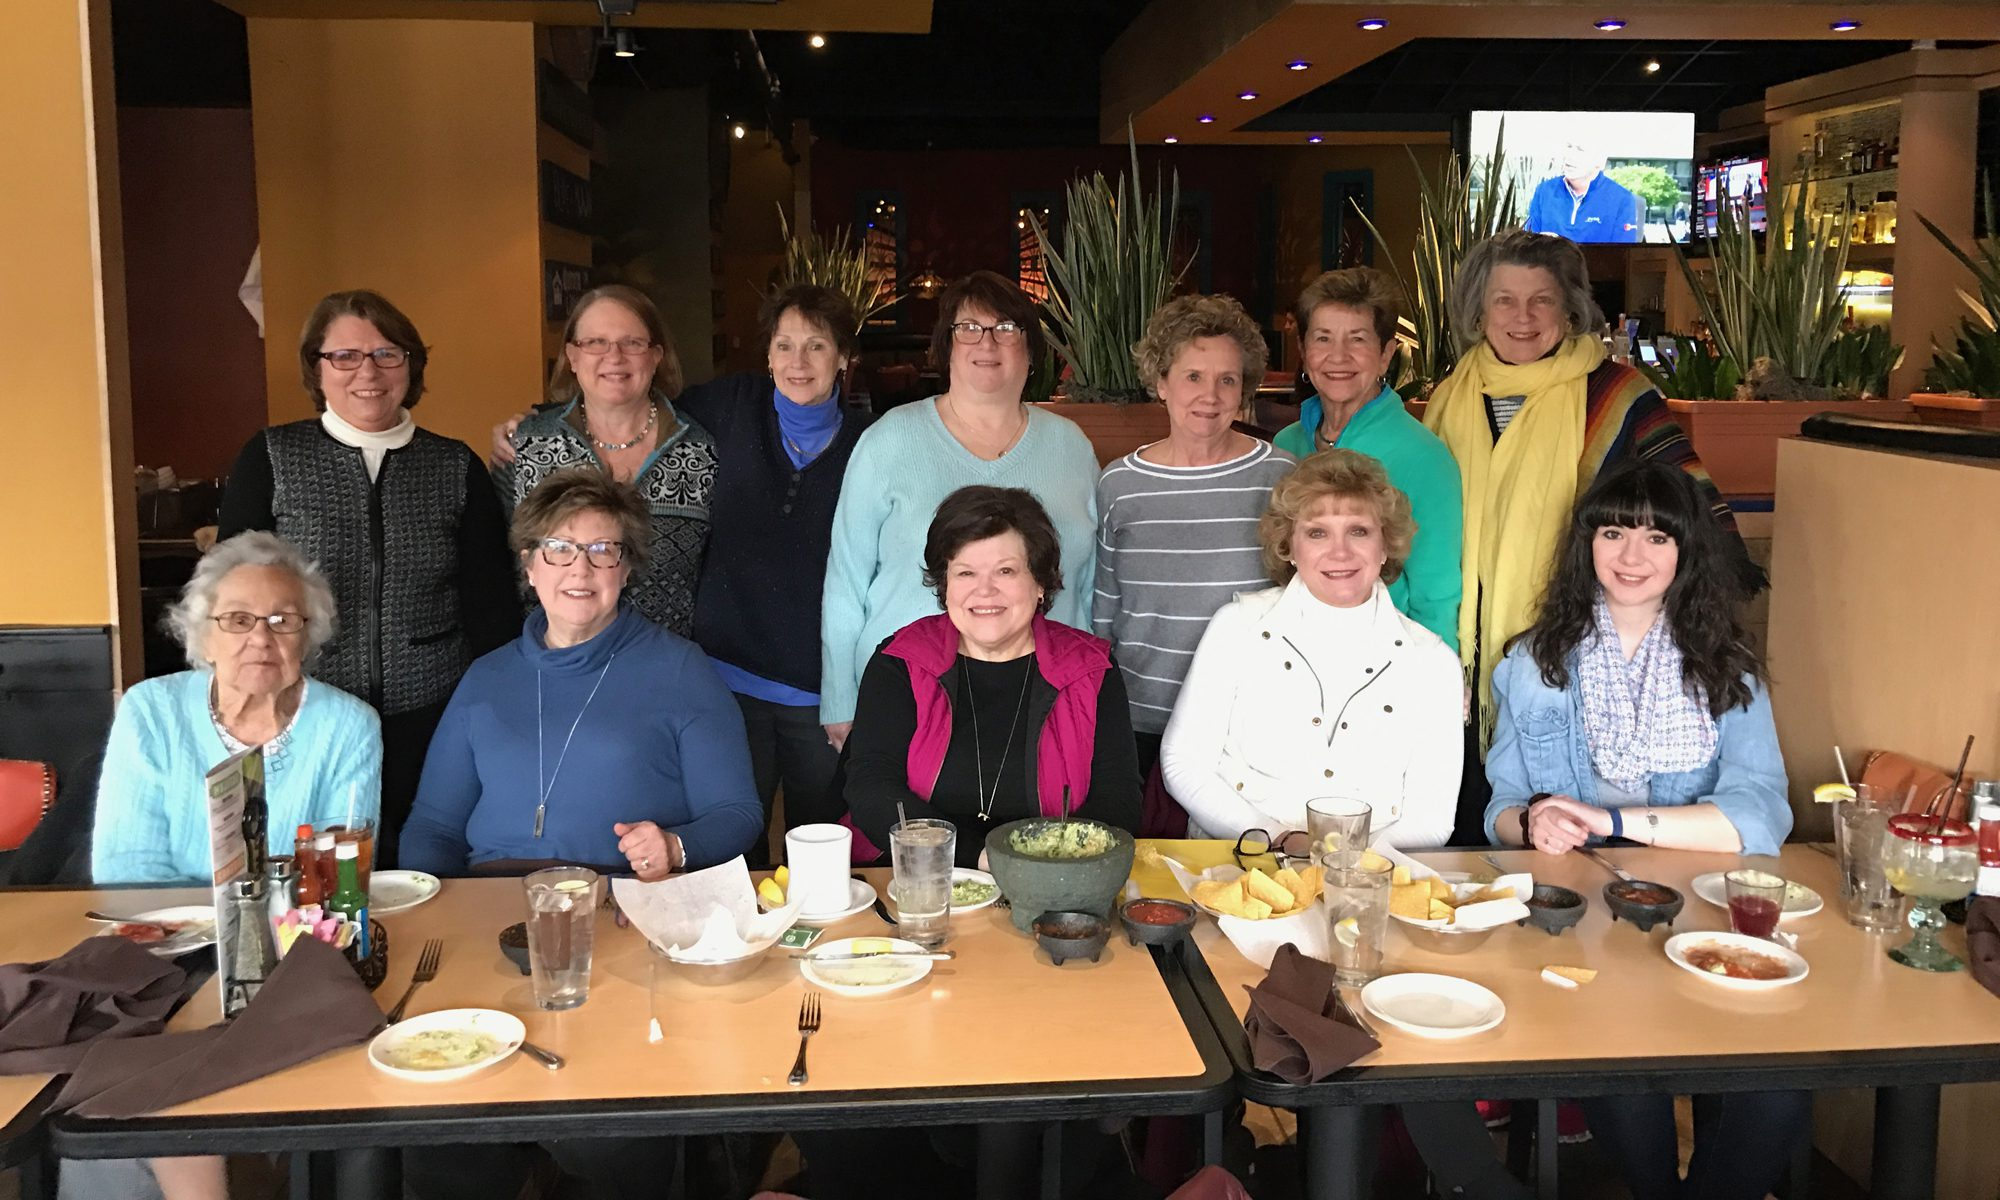 Pittsburgh South Hills Alumnae Chapter of Delta Gamma